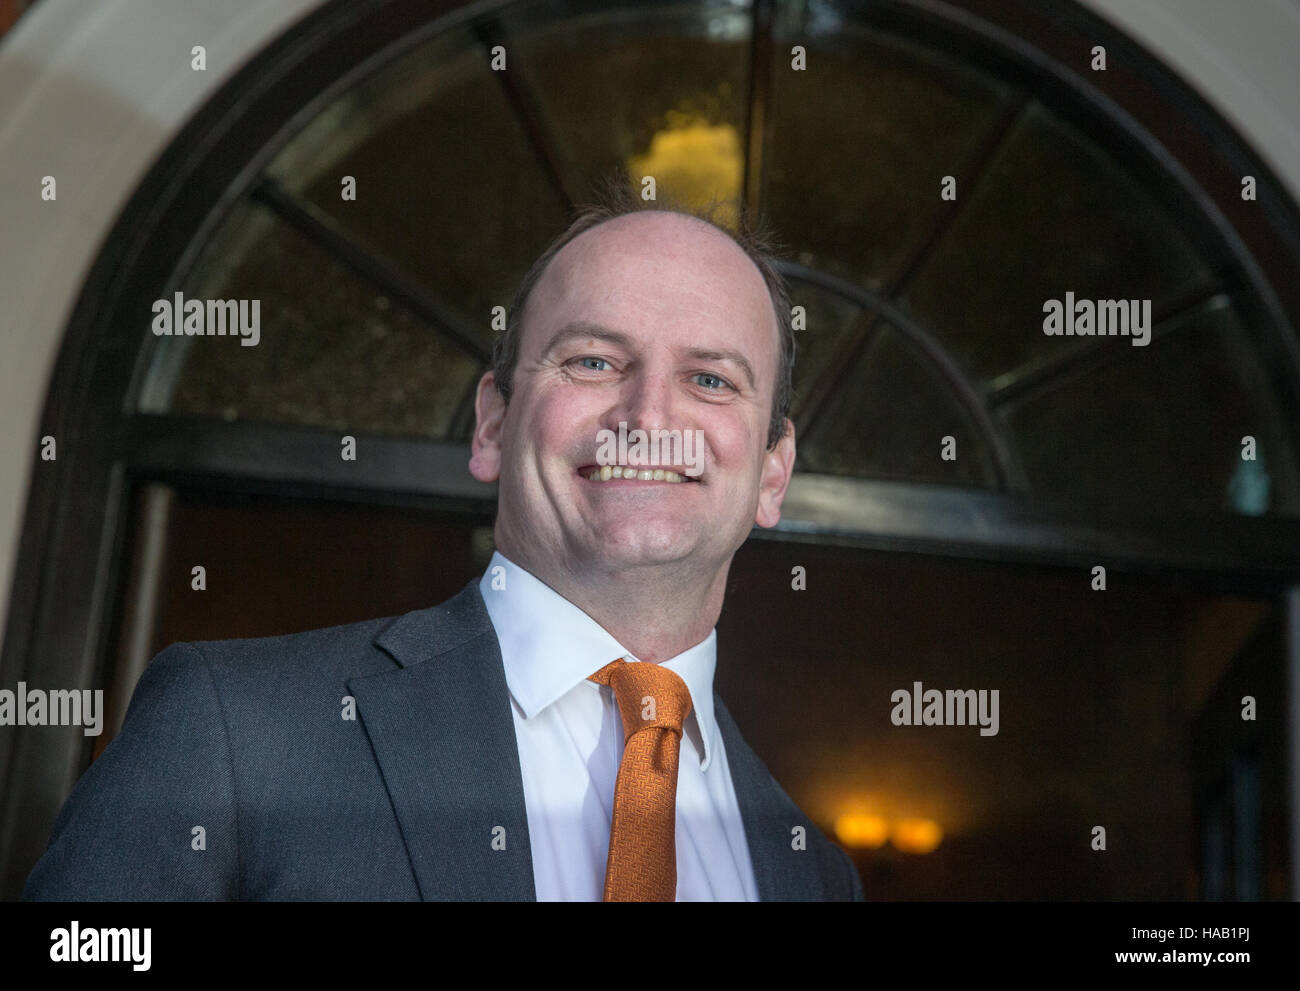 Douglas Carswell,MP for Clacton on Sea,at the announcement of the new UKIP leader in Westminster - Stock Image